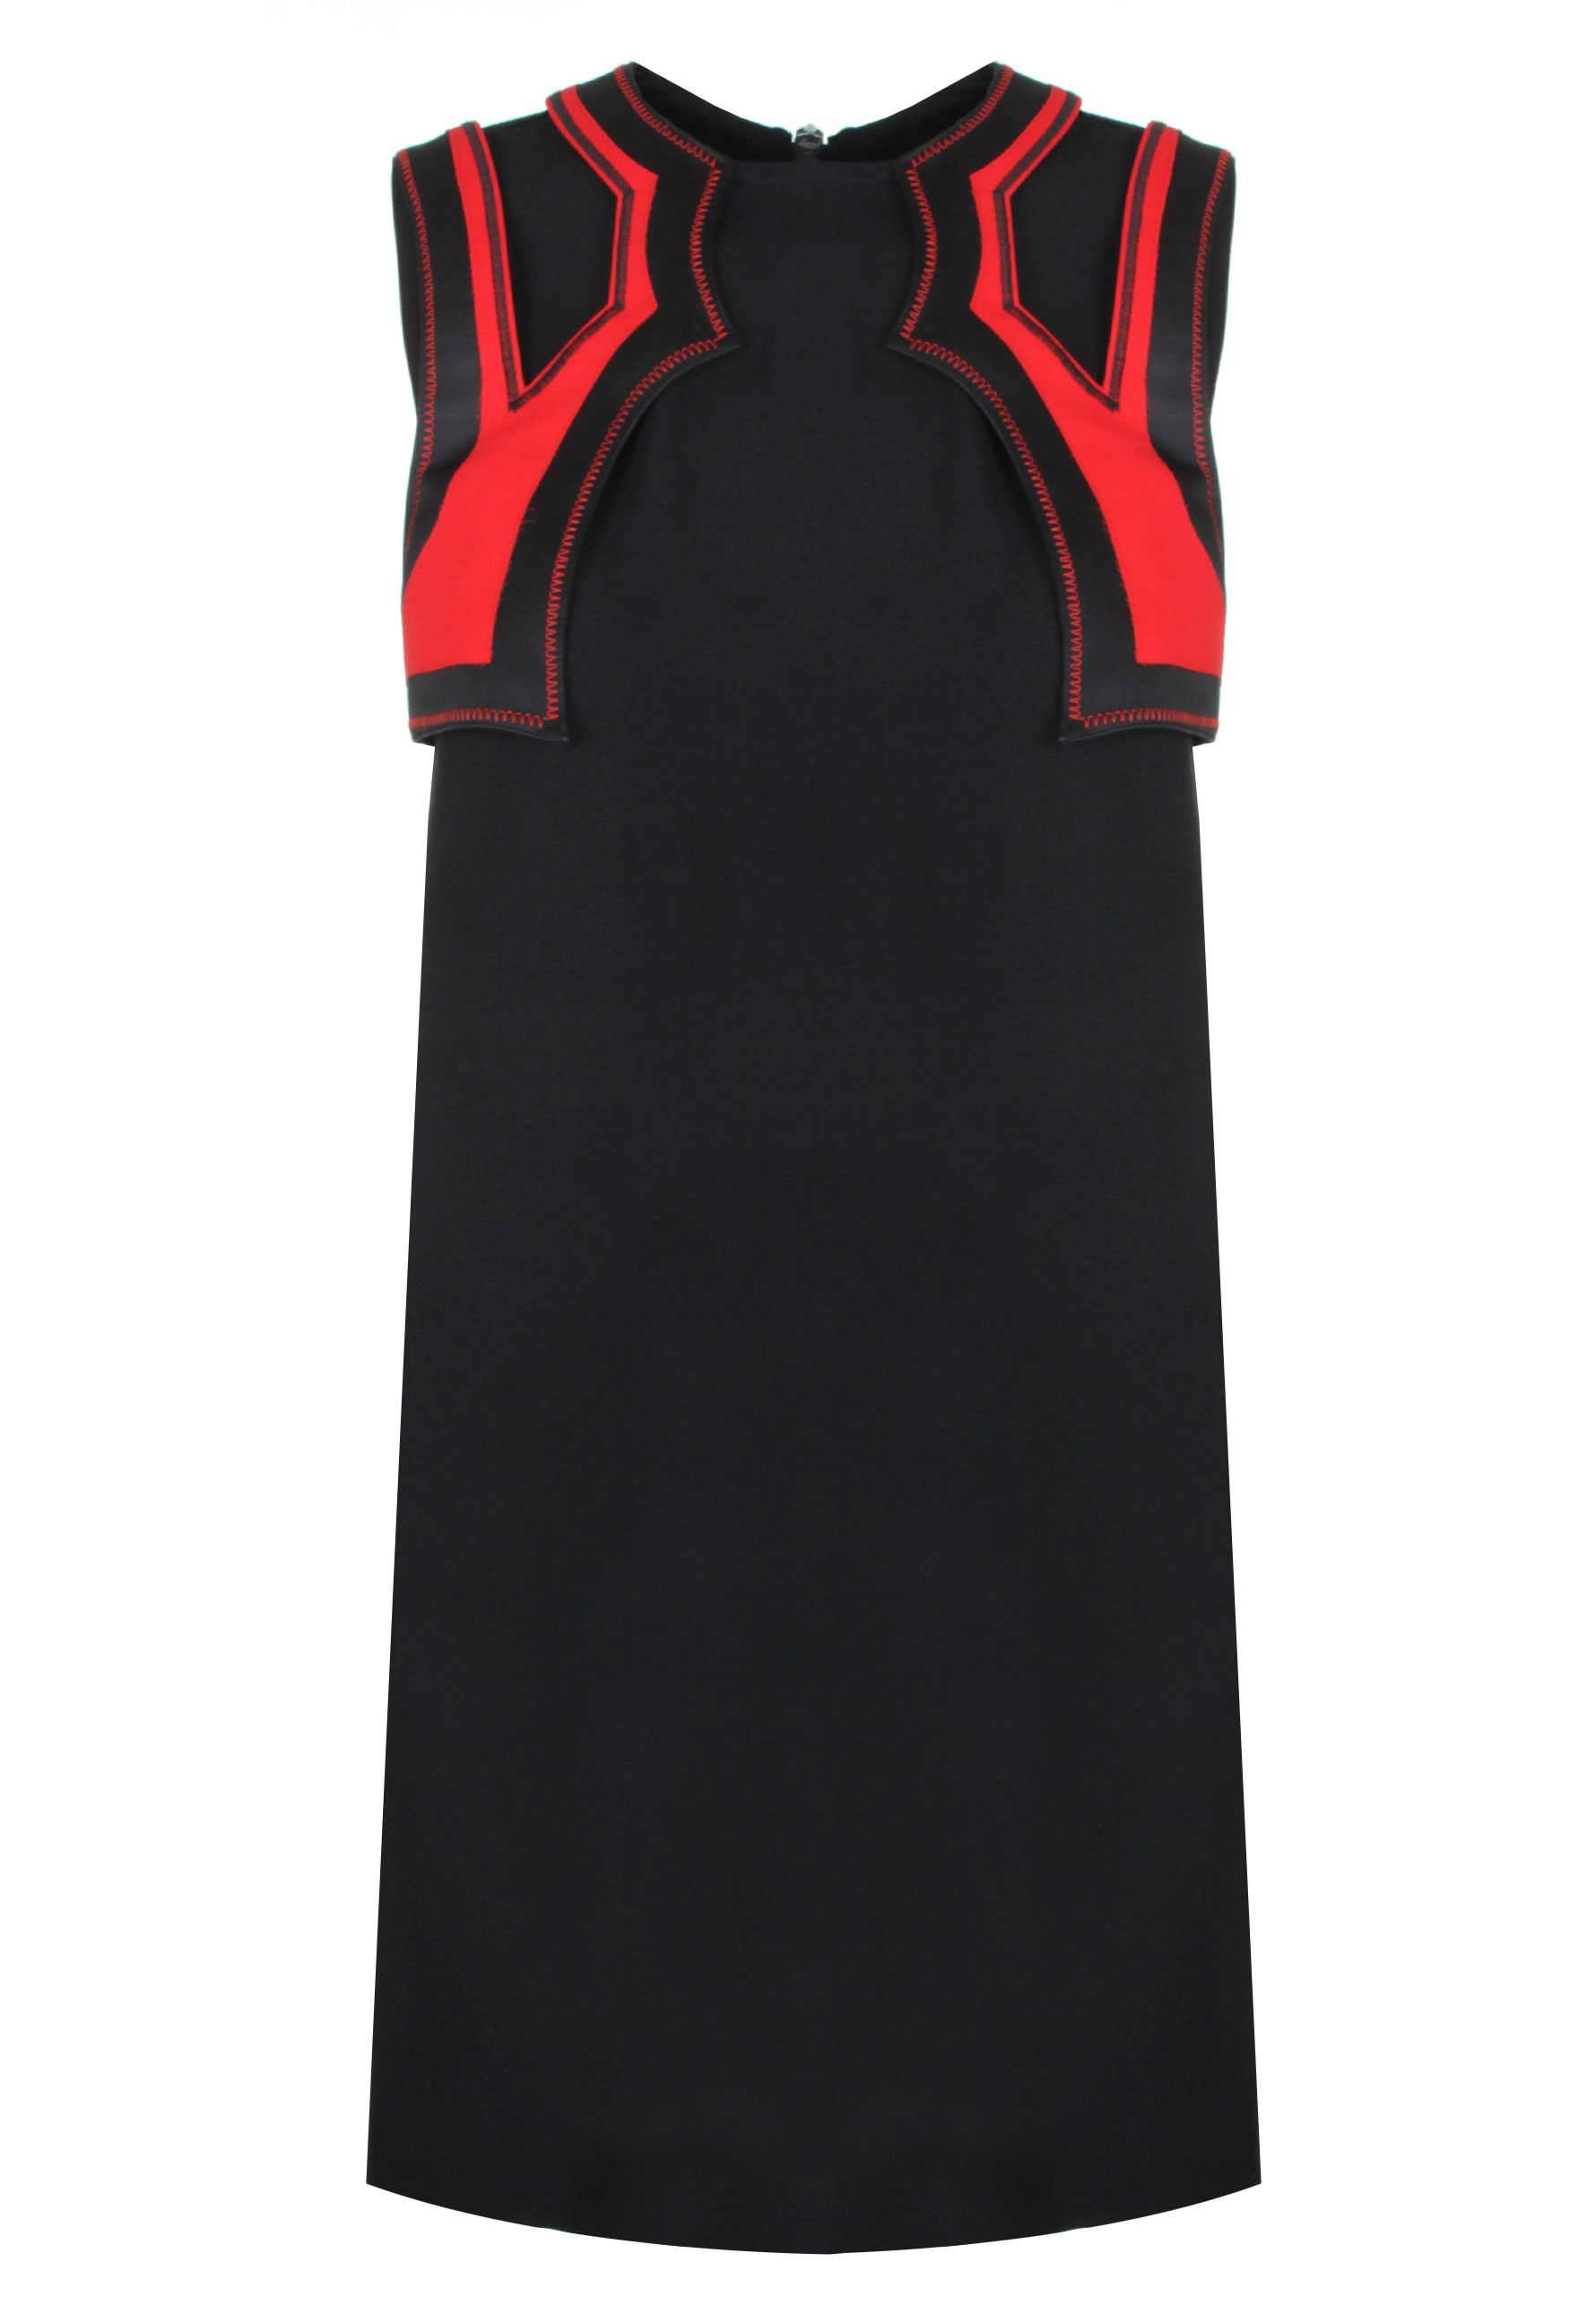 d94d701cce Versus Versace Contemporary Western Mini Dress in black/red. Taking  inspiration from the wild